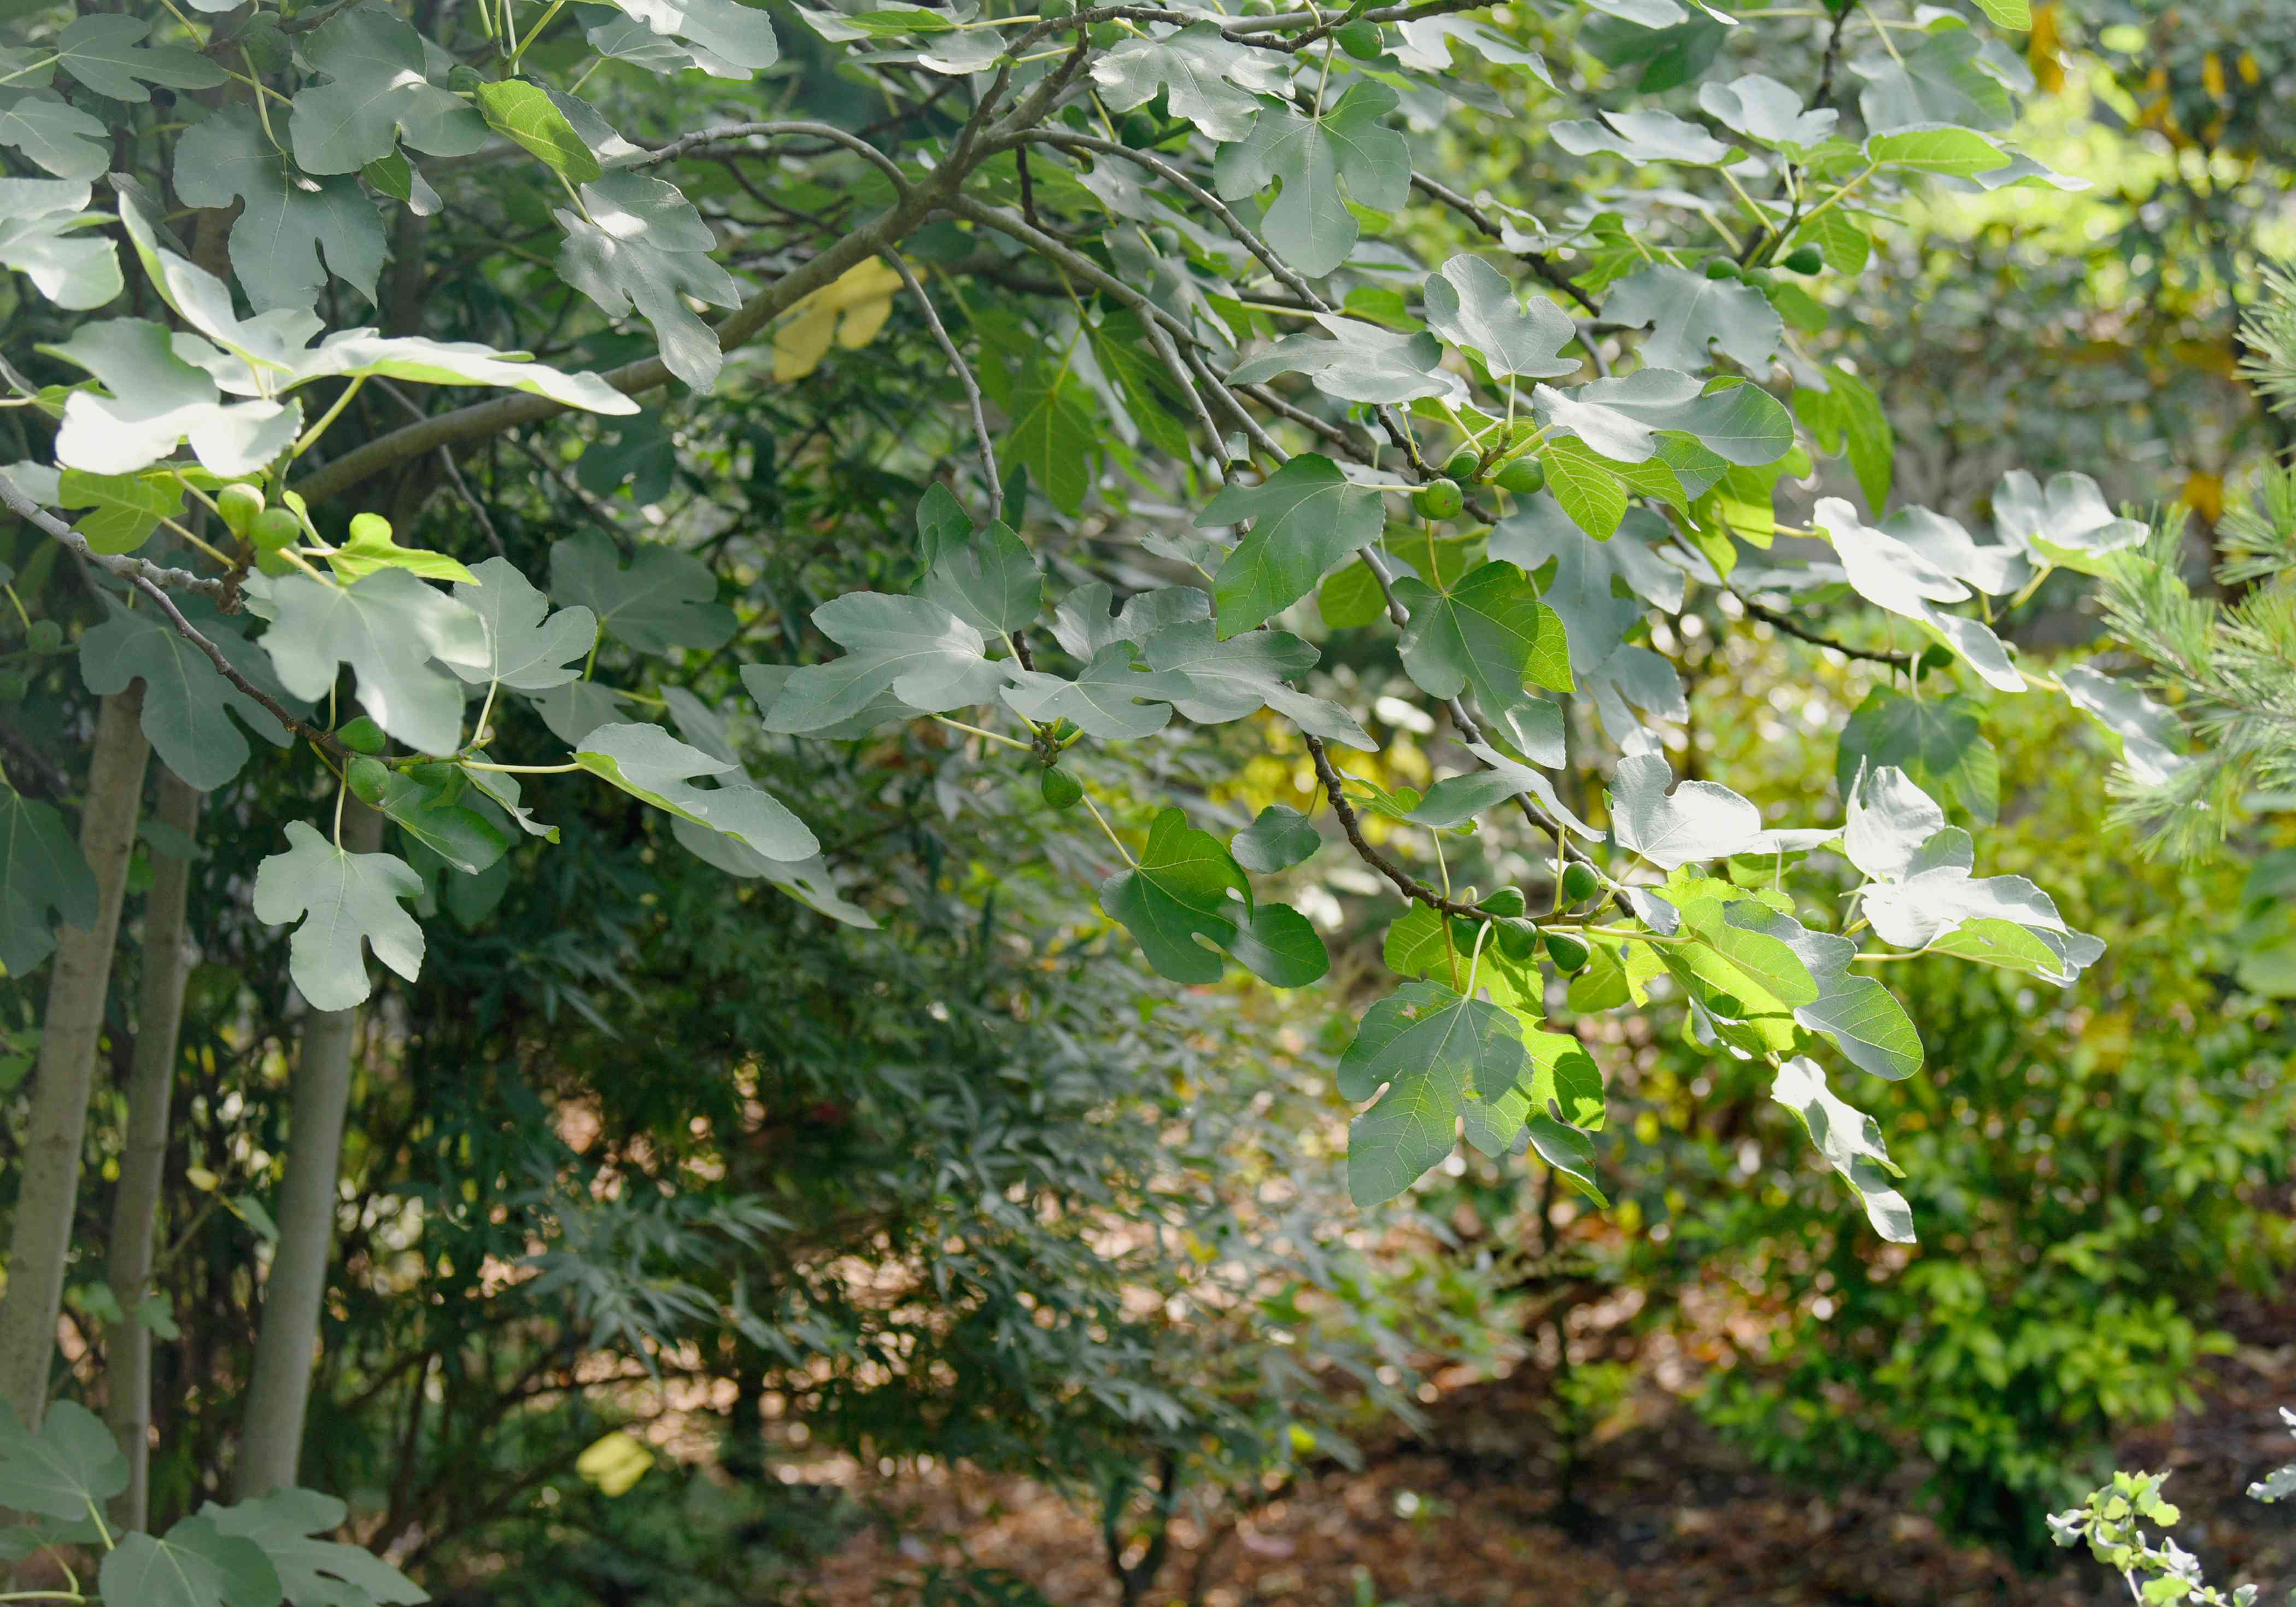 Common fig tree with branches hanging over with large leaves